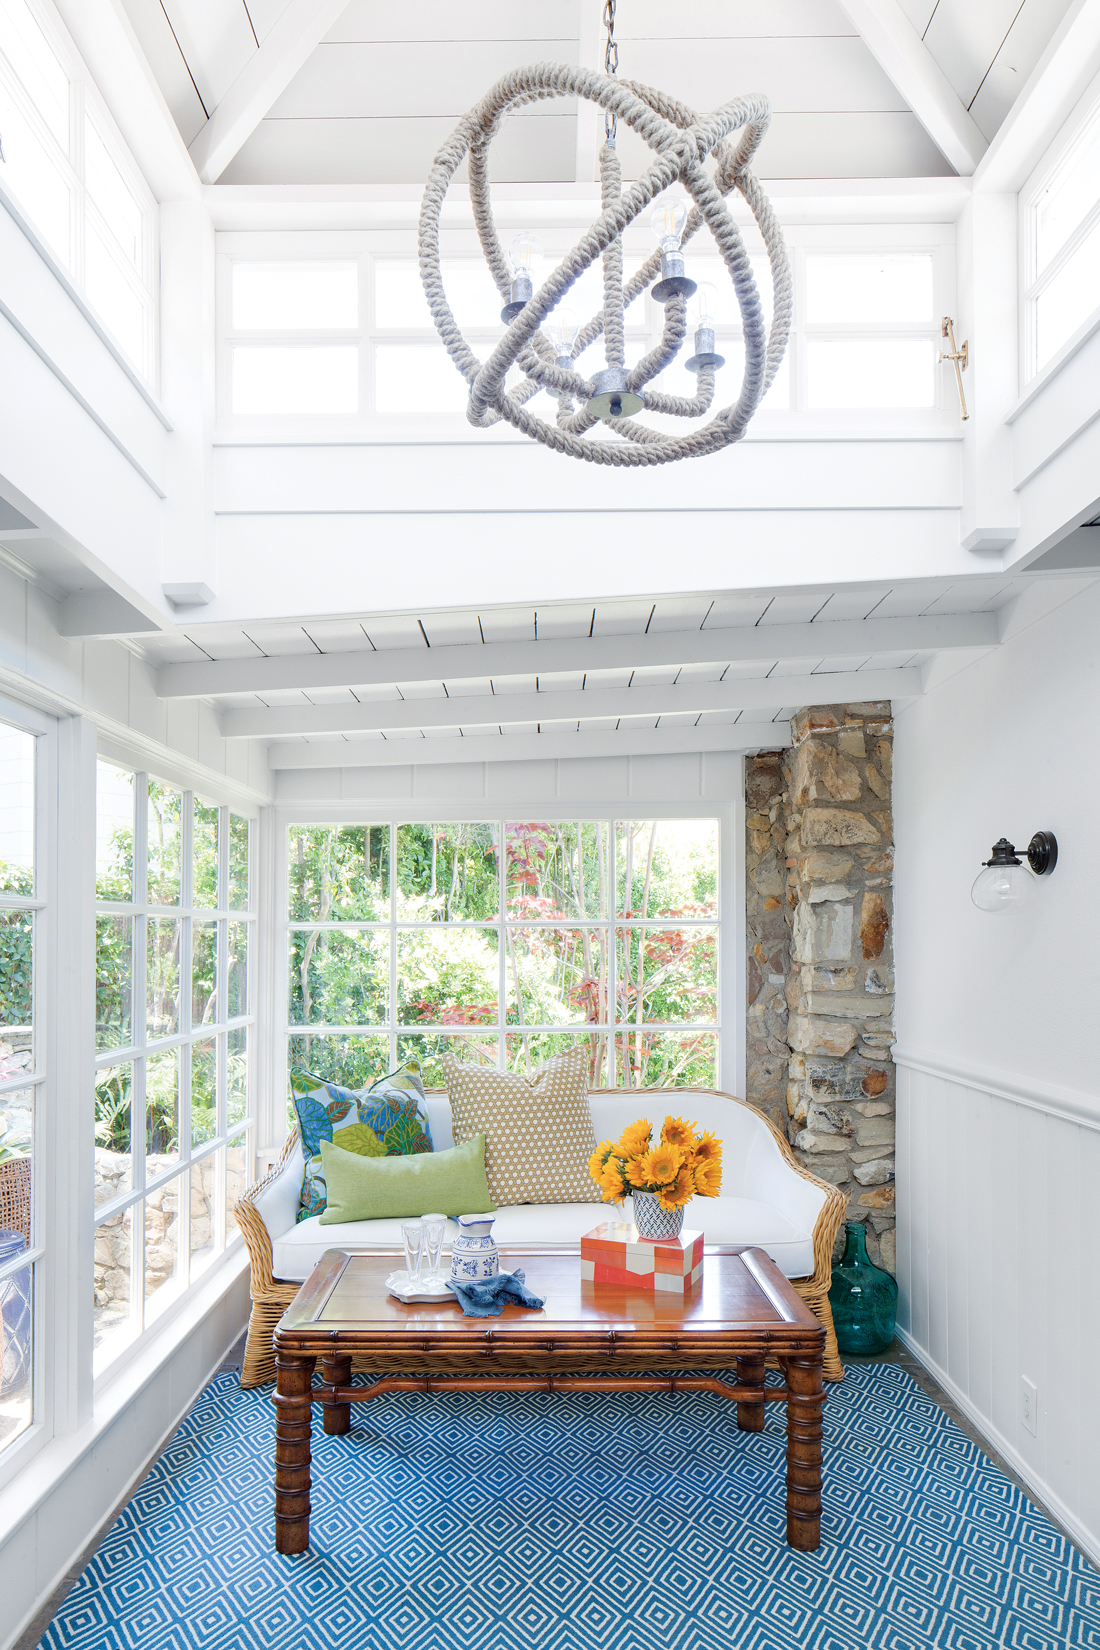 Sun room in a cottage beach house with a white nautical rope light fixture hanging from the vaulted ceiling over a seating area.